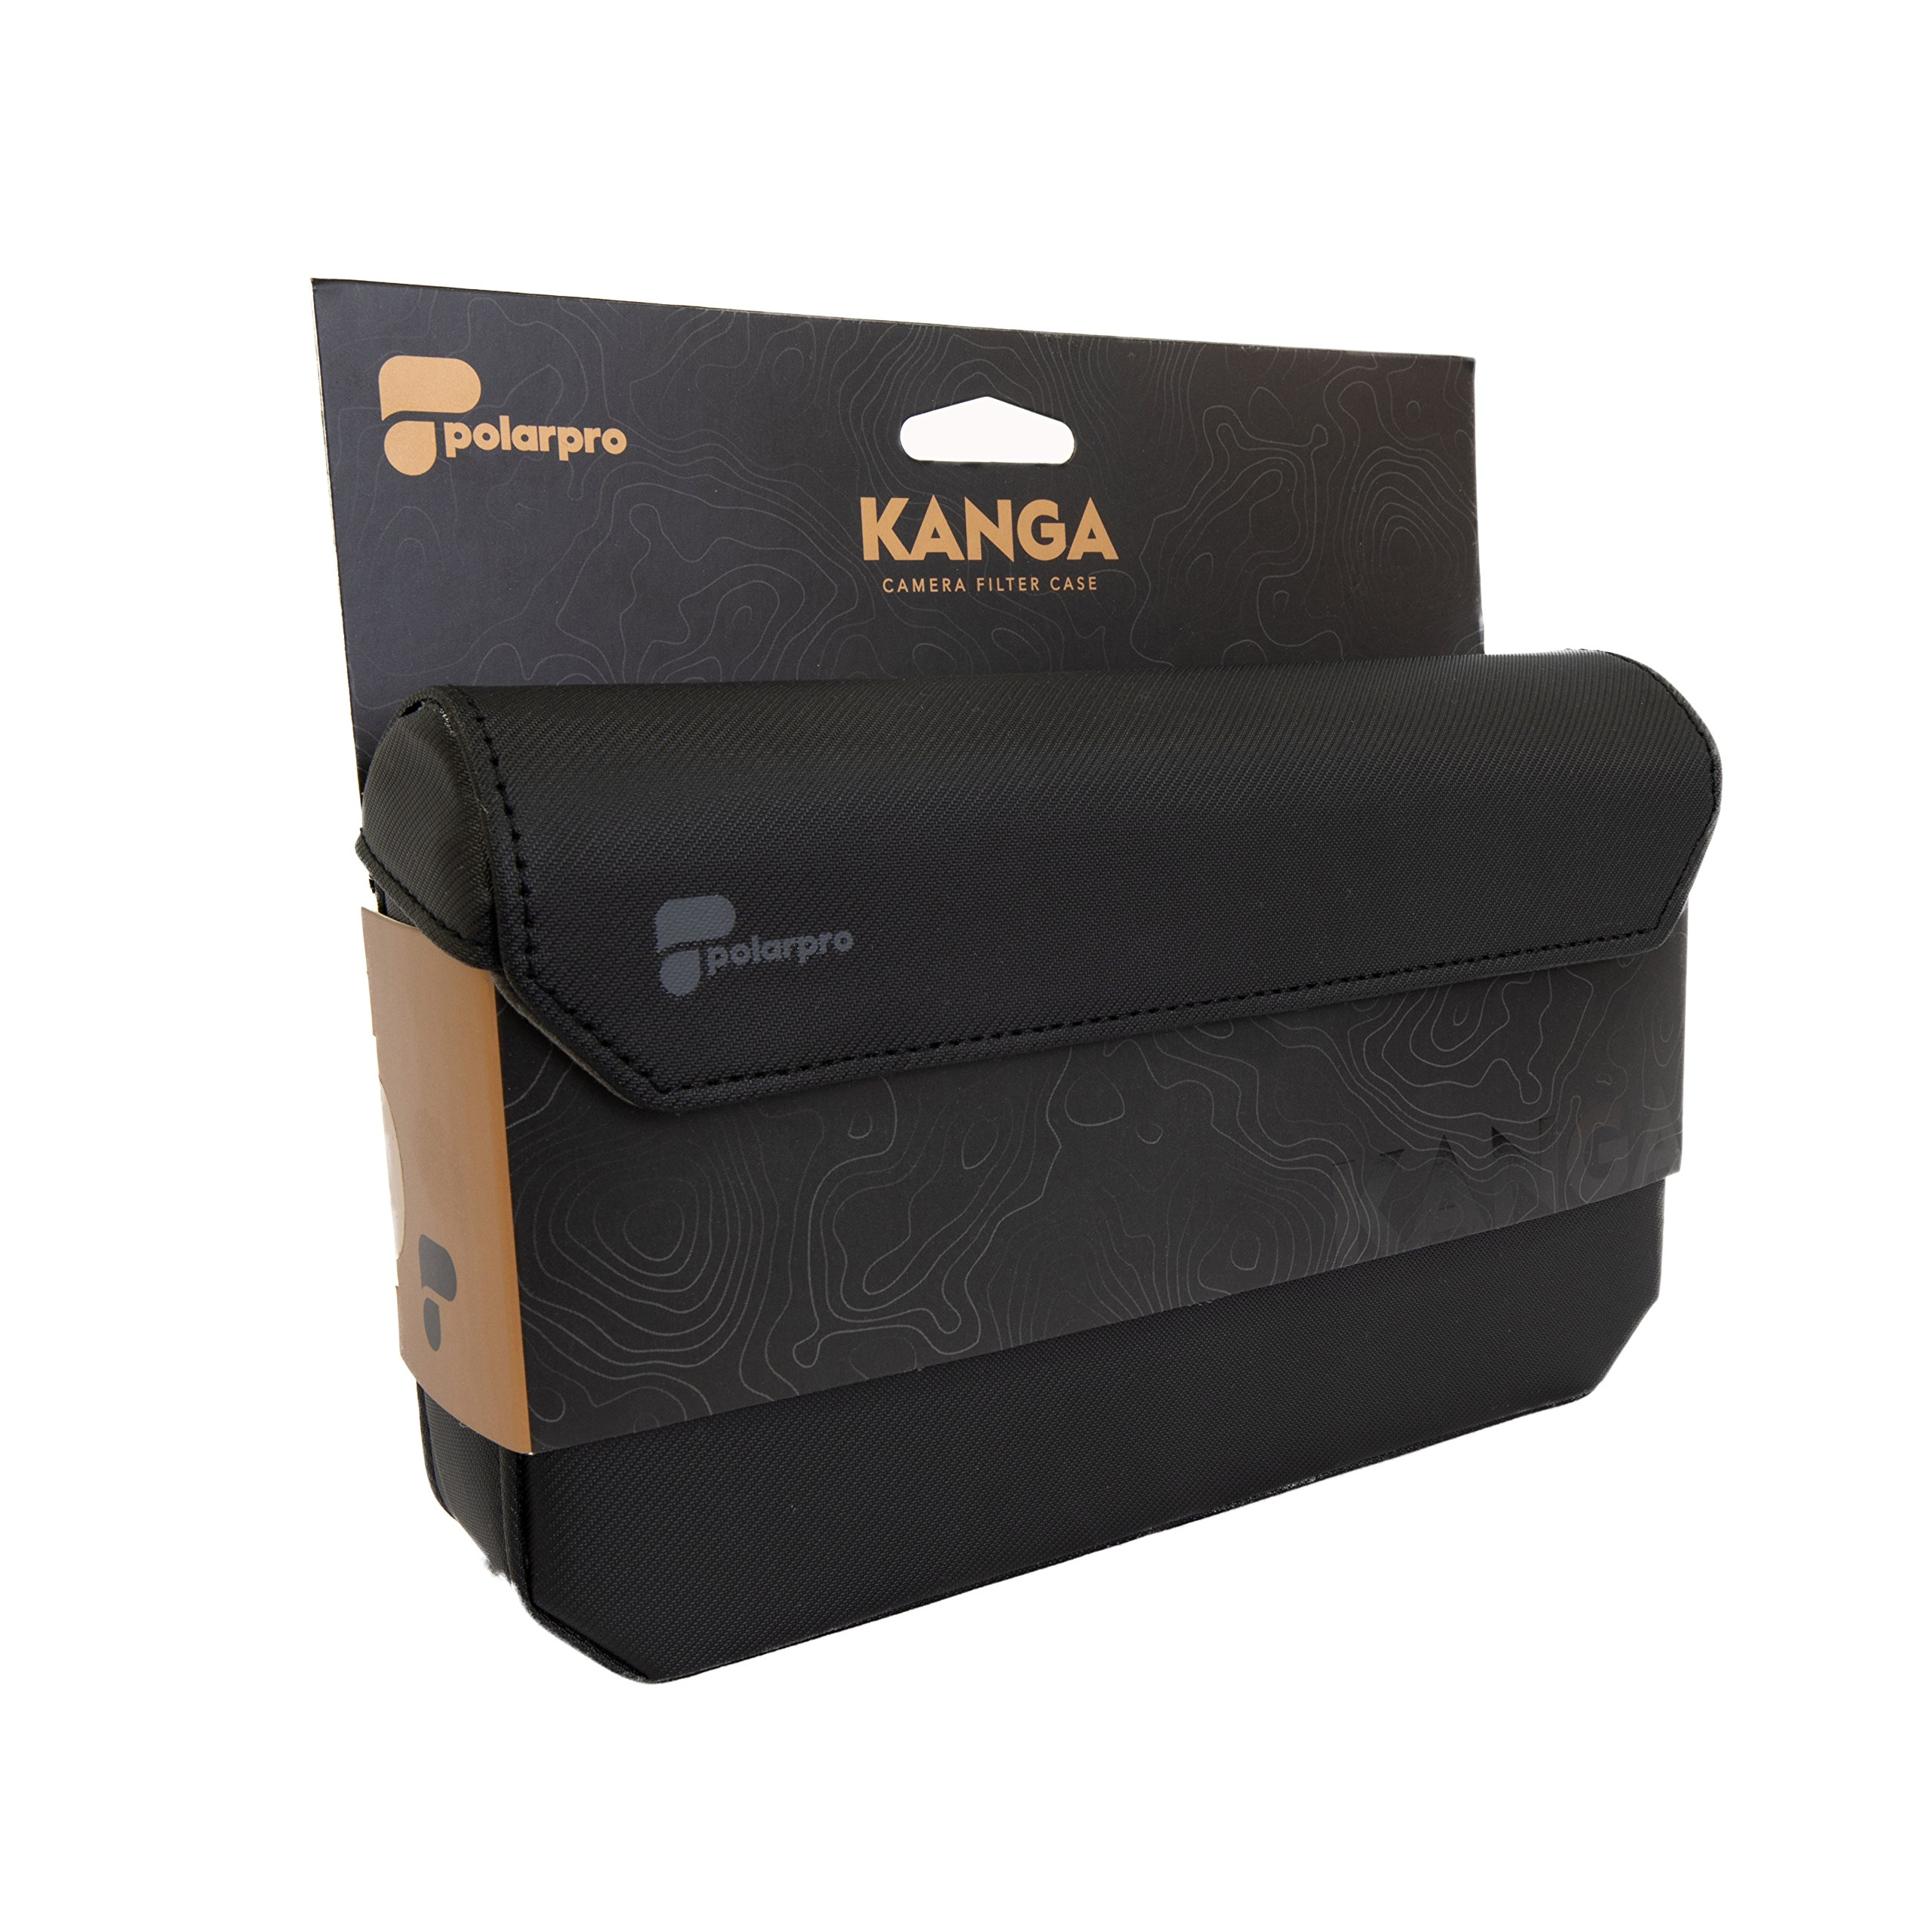 PolarPro Kanga6 Filter Case - Quick-Draw/Magnetic/Crushproof for 6 Filters